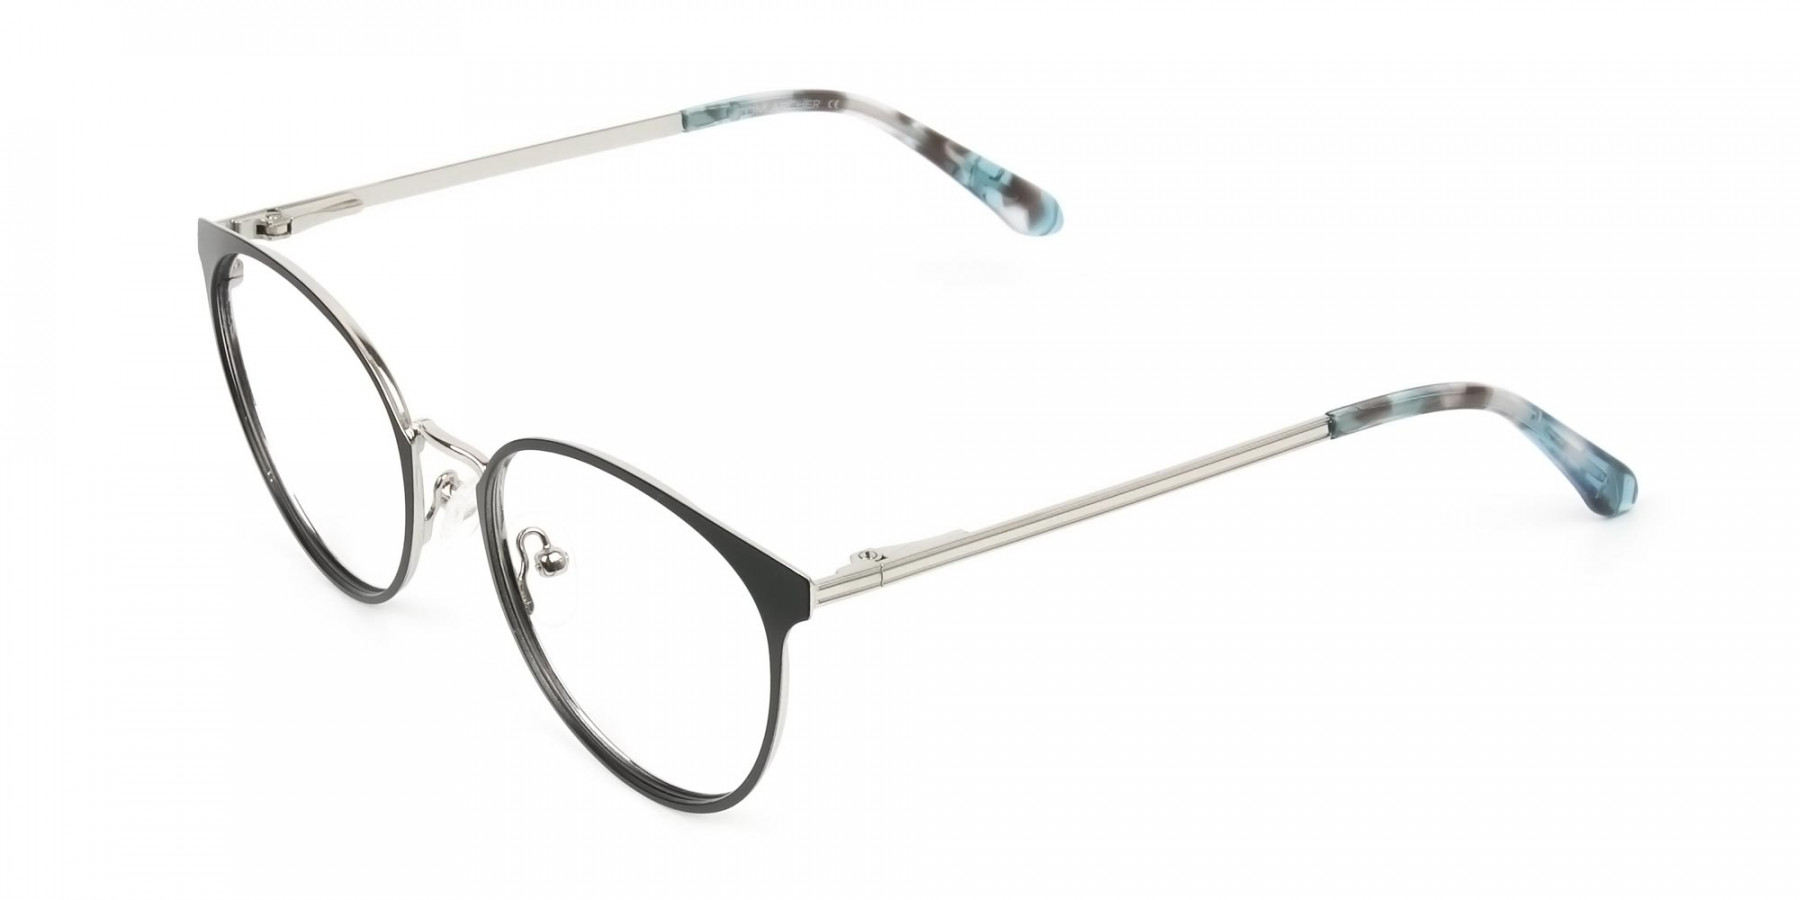 Silver Black Metal Glasses in Round Men Women - 1